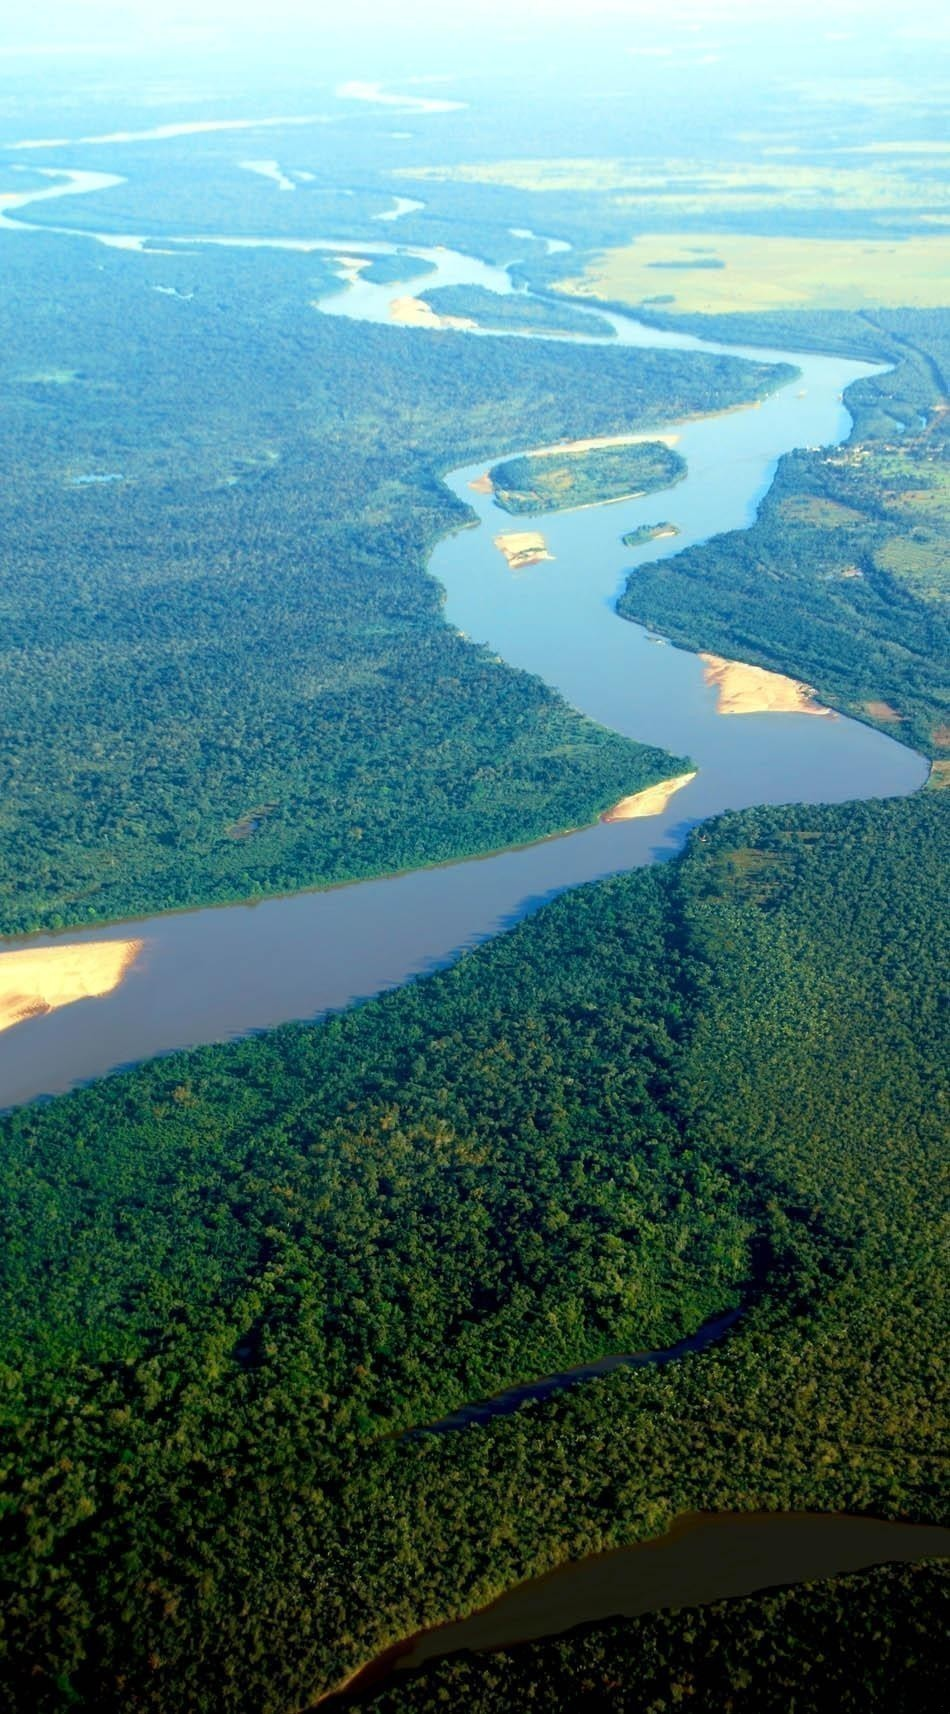 erial view of rainforest at the Araguaia River on the border of the states of Mato Grosso and Goias | Brazil Travel Guide